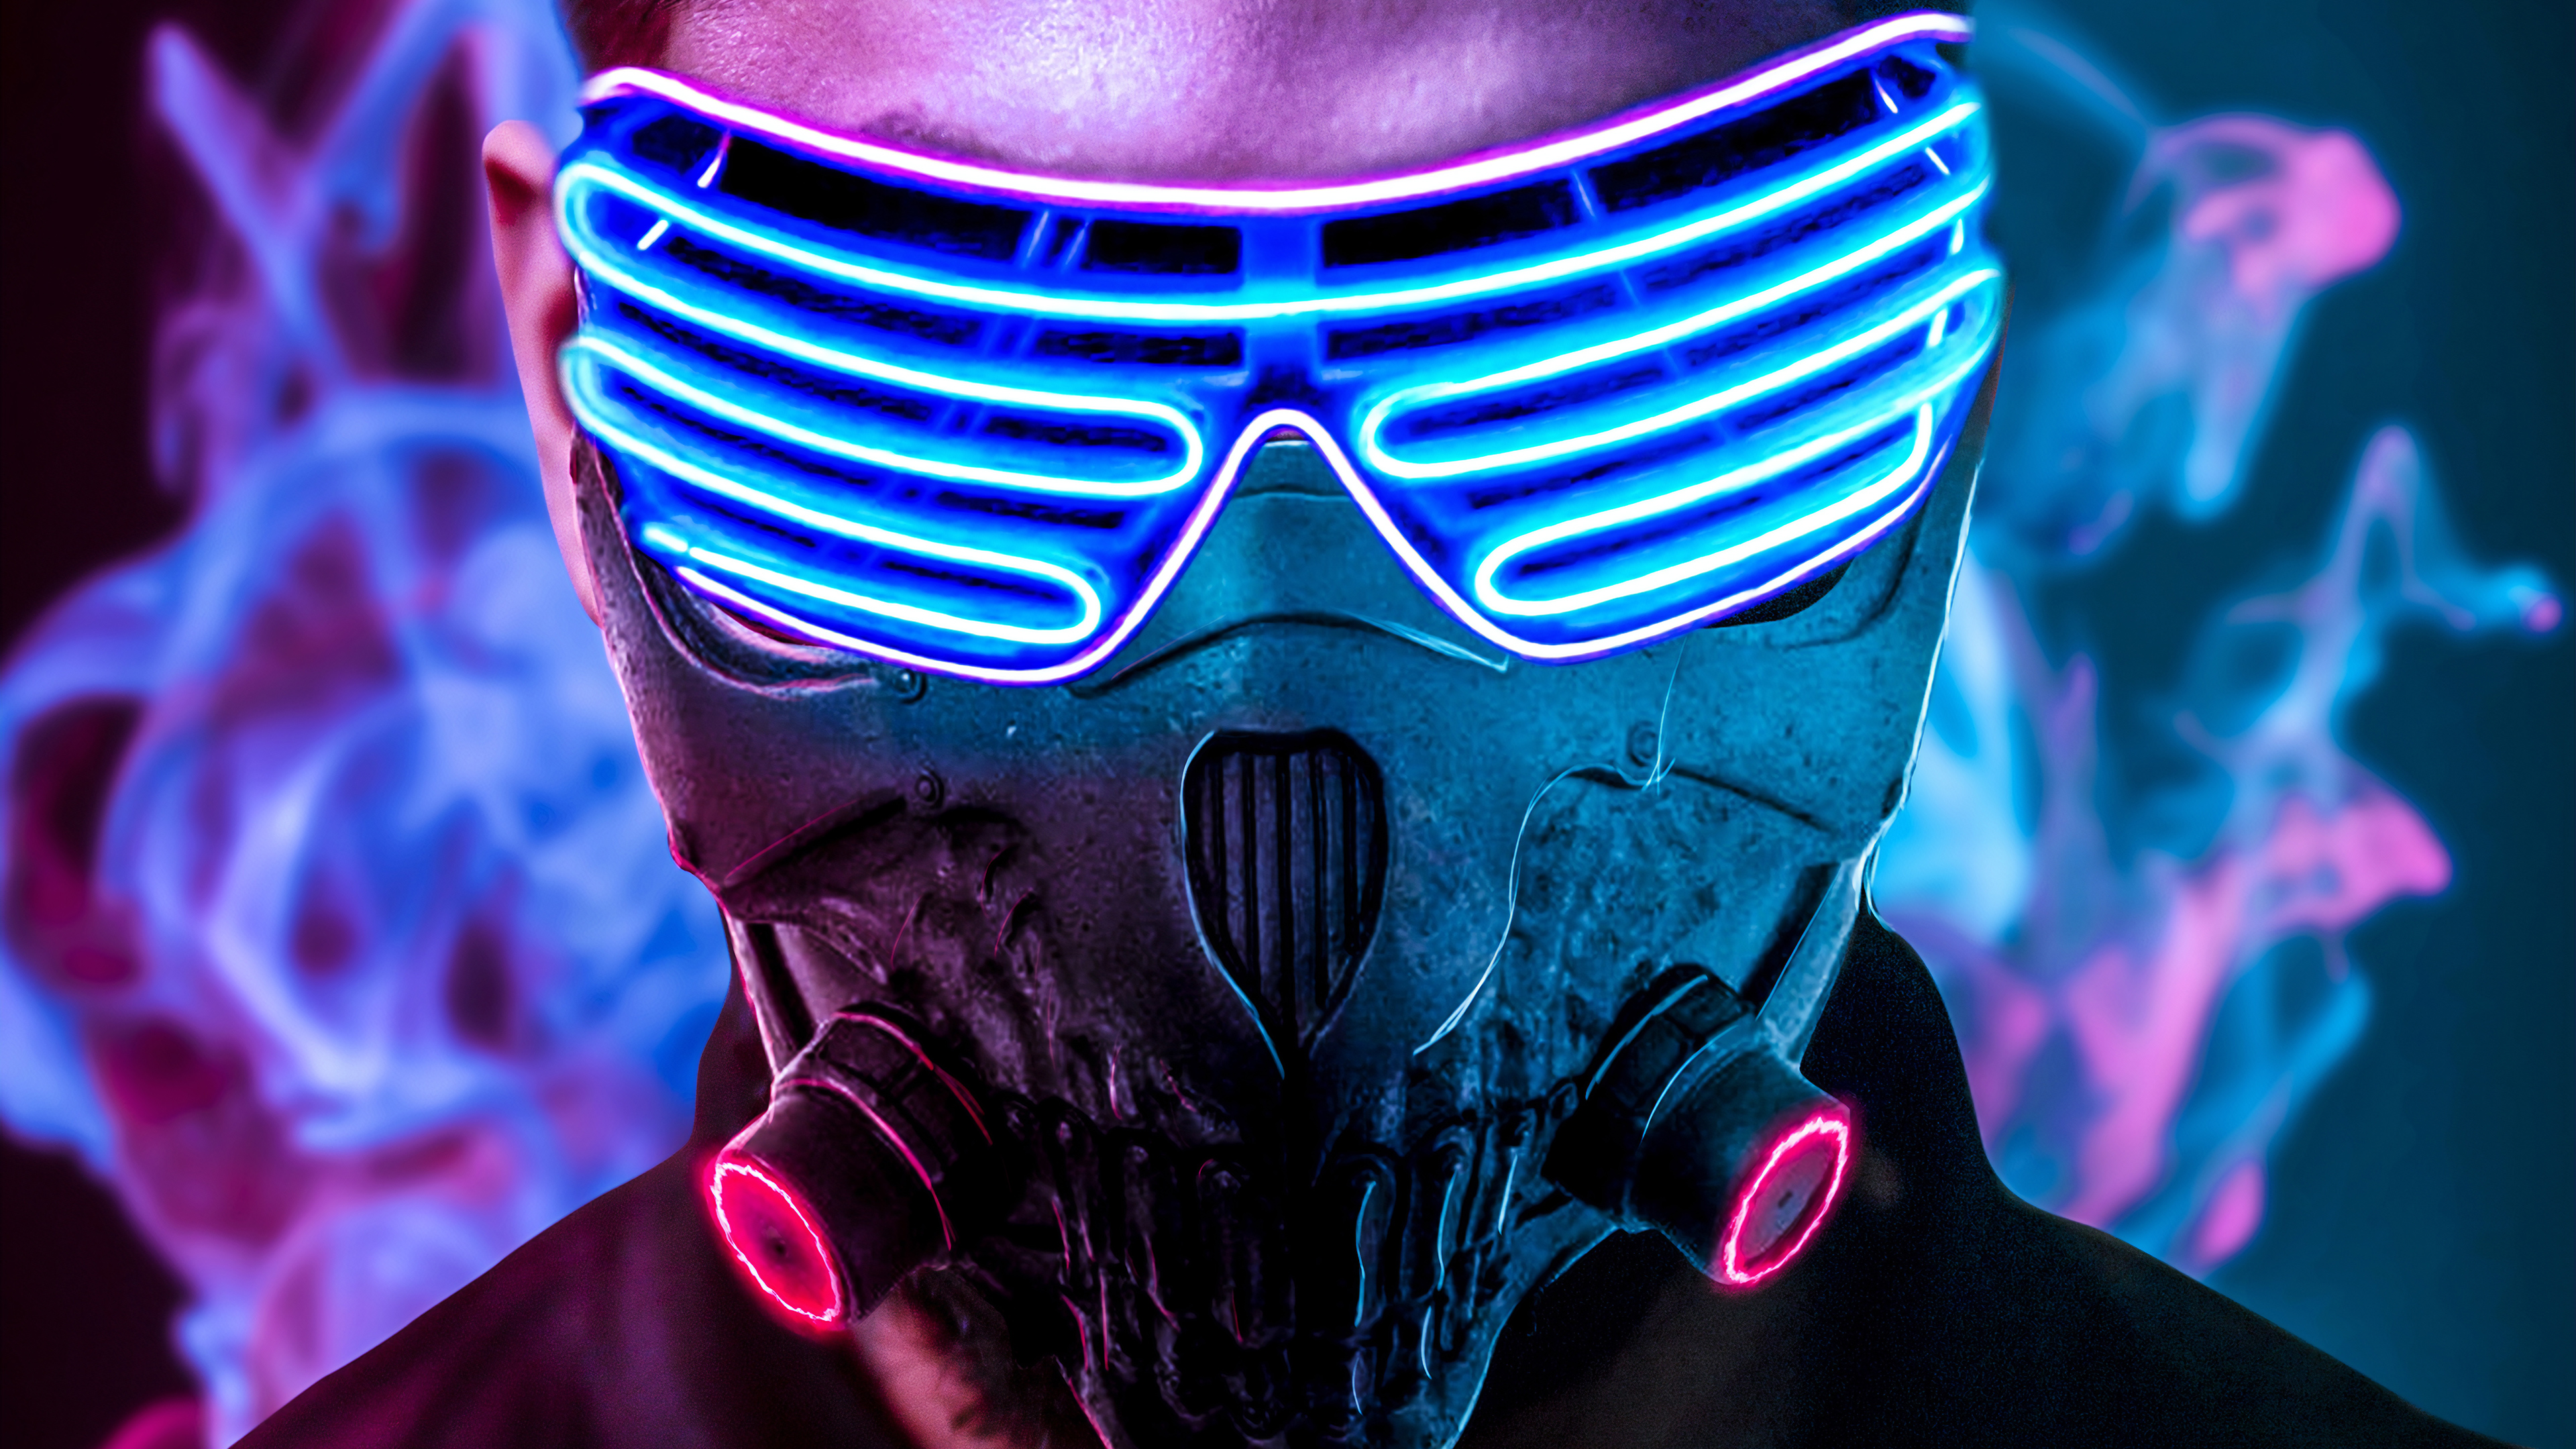 Mask Neon 4k Hd Artist 4k Wallpapers Images Backgrounds Photos And Pictures